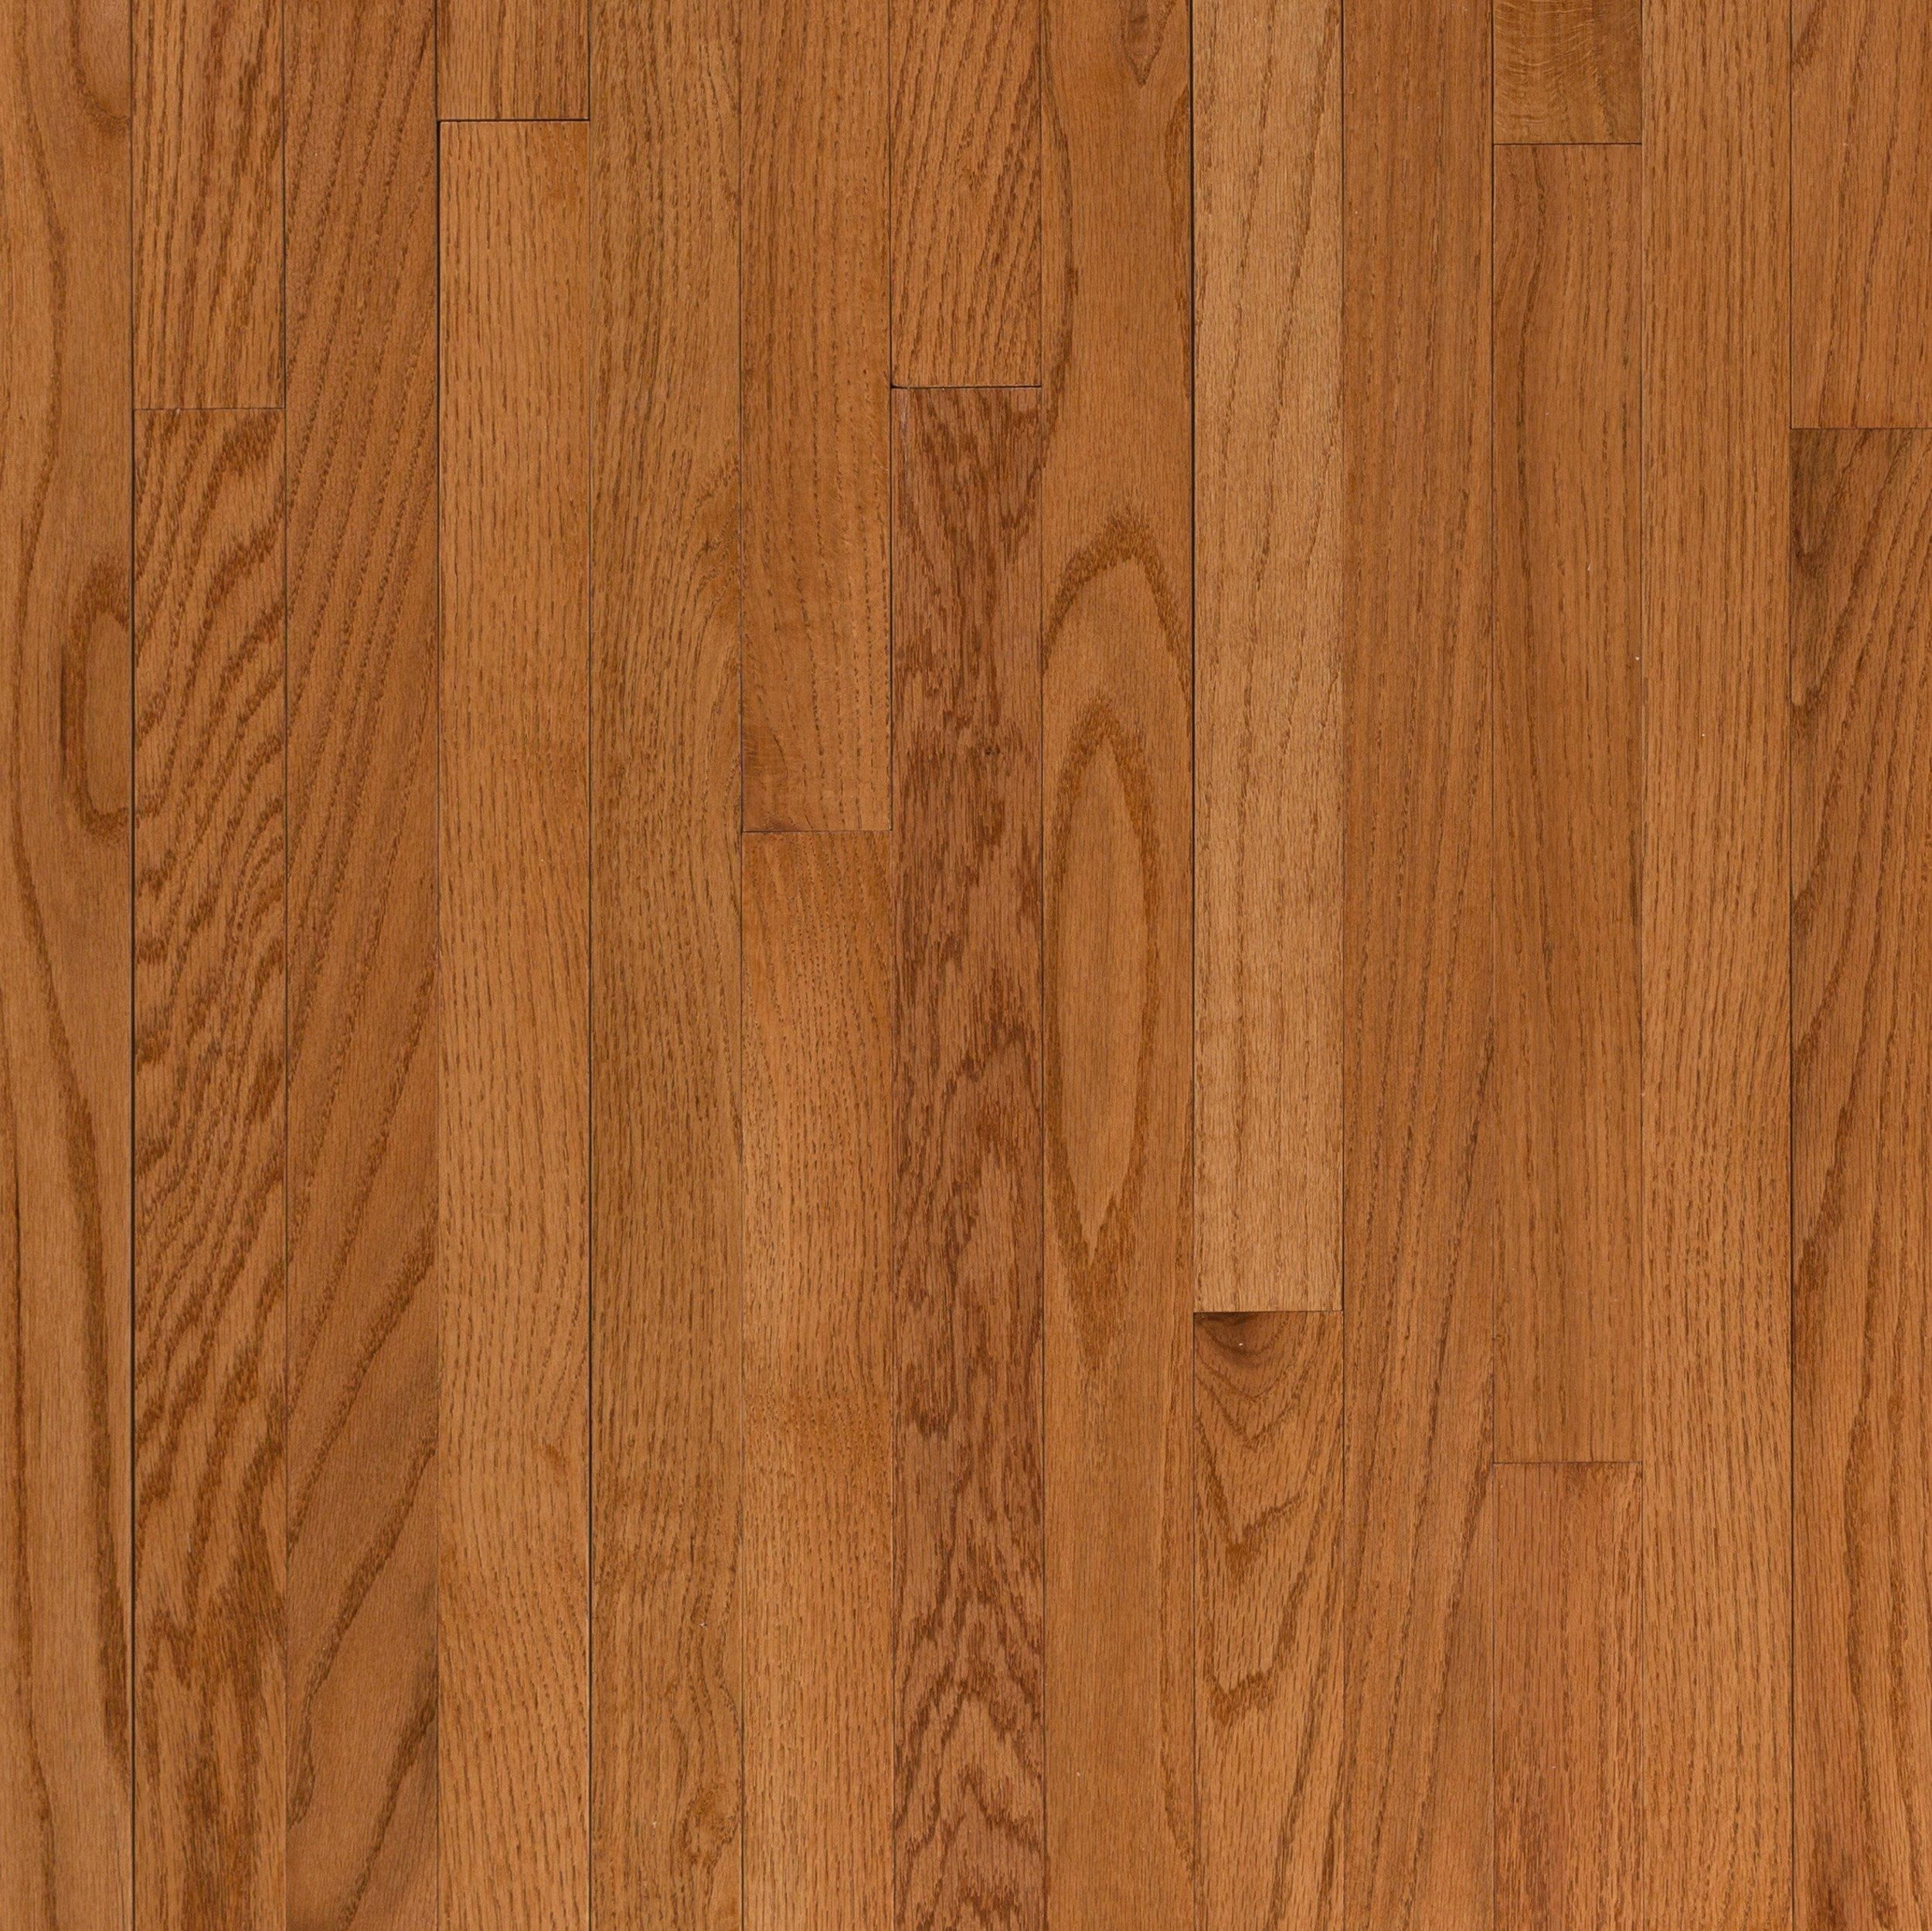 Butterscotch Select Oak High Gloss Solid Hardwood In 2020 Solid Hardwood Floors Solid Hardwood Hardwood